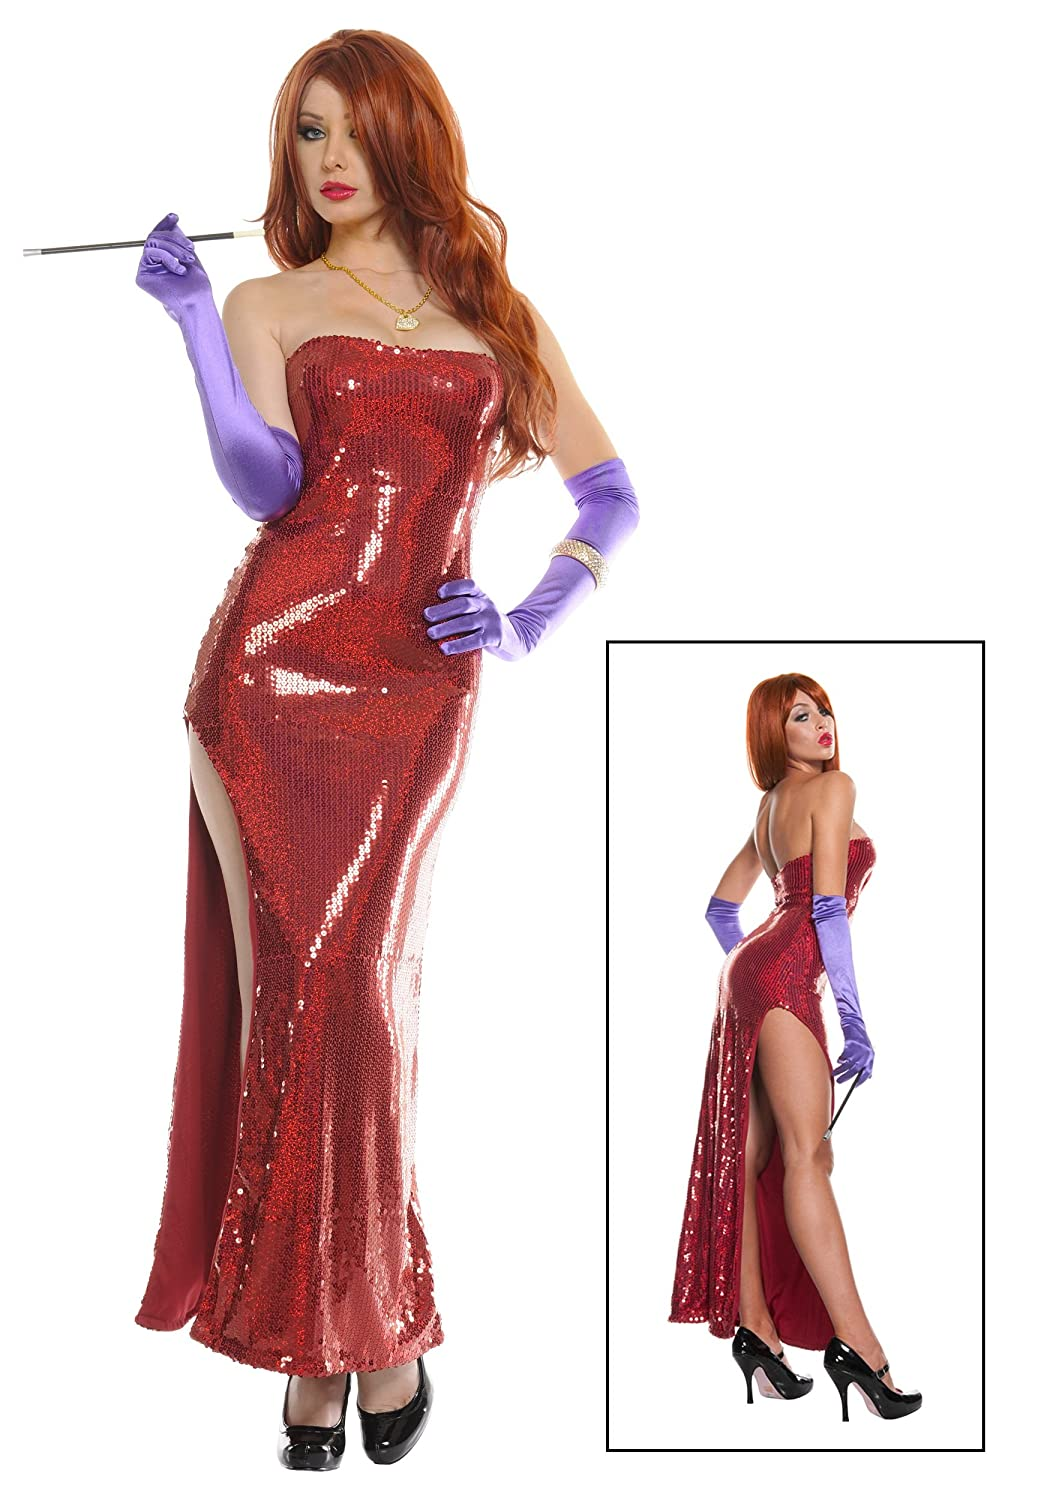 Fun Costumes womens Exclusive Deluxe Sequin Hollywood Singer Costume